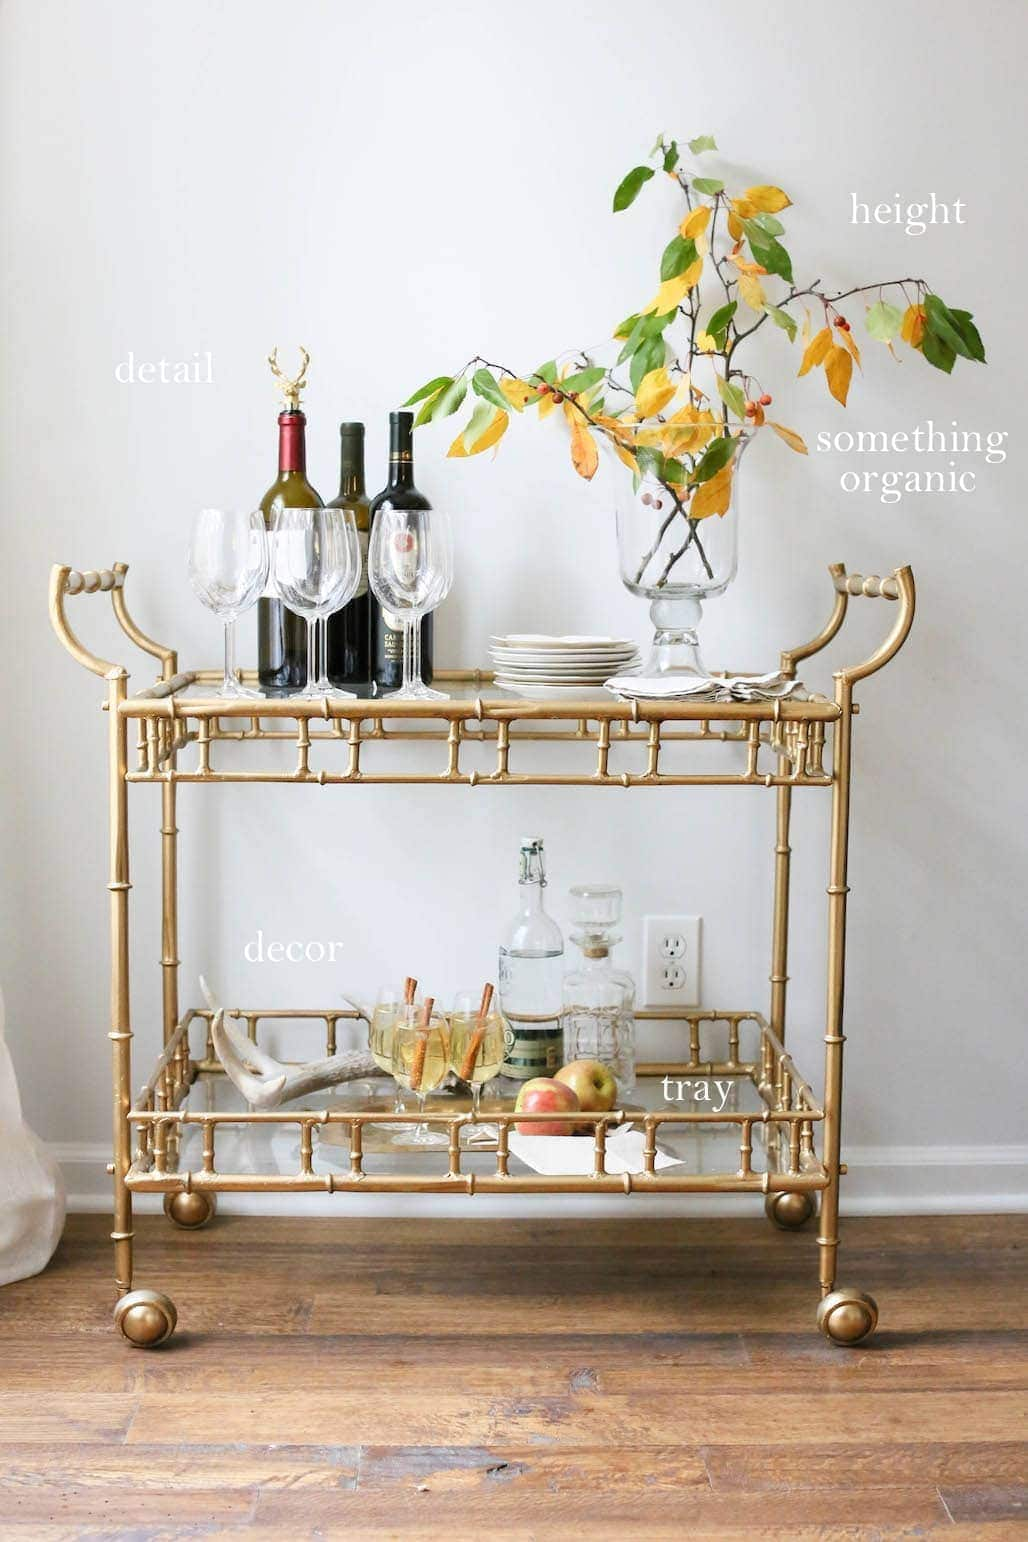 A styled and functional bar cart needs details, heigh, something organic and decor